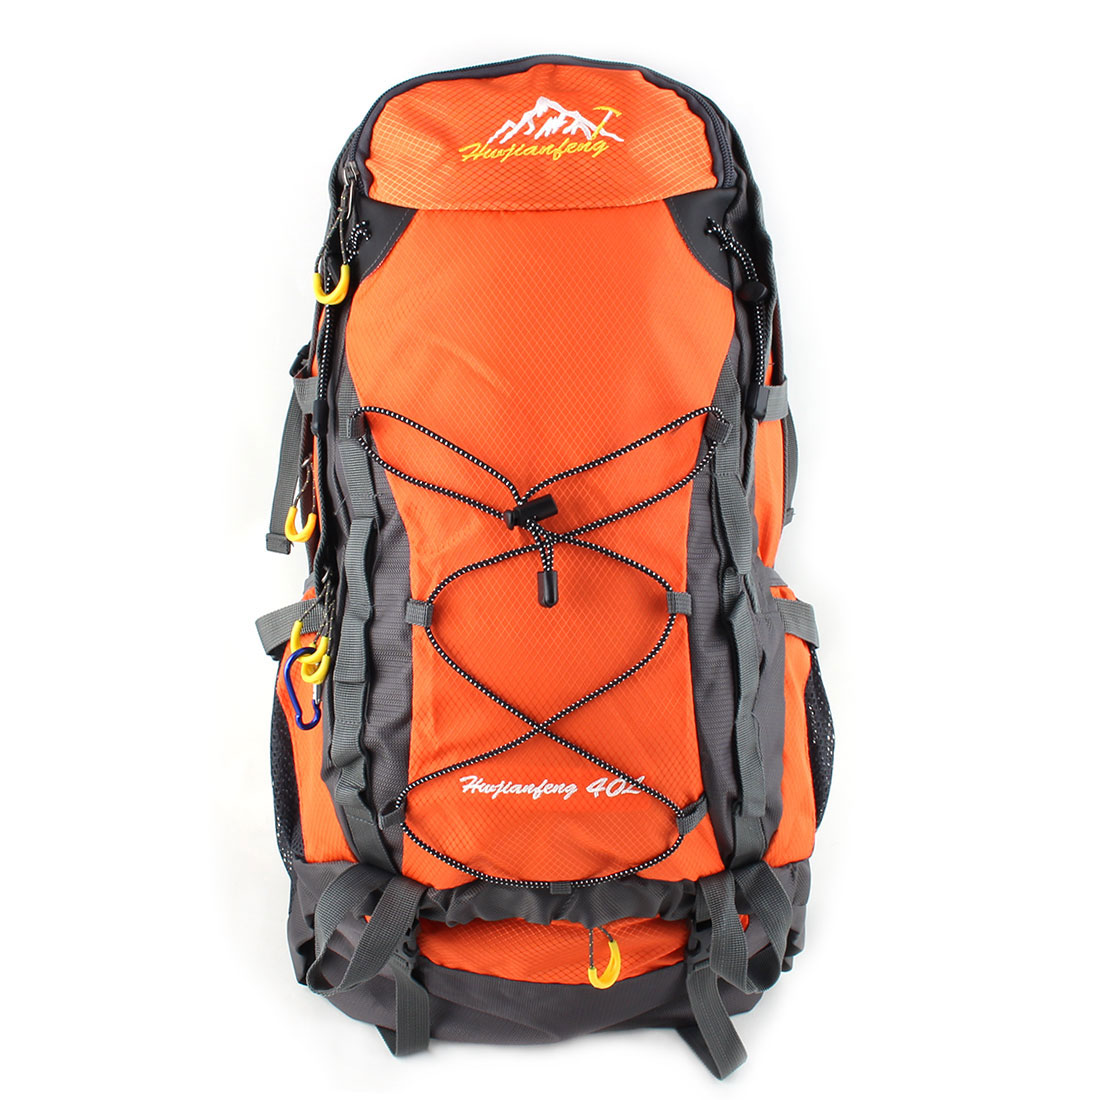 HWJIANFENG Authorized Outdoor Travel Trekking Climbing Mountaineering Pack Water Resistant Lightweight Sport Bag Hiking Backpack Daypack Orange 40L